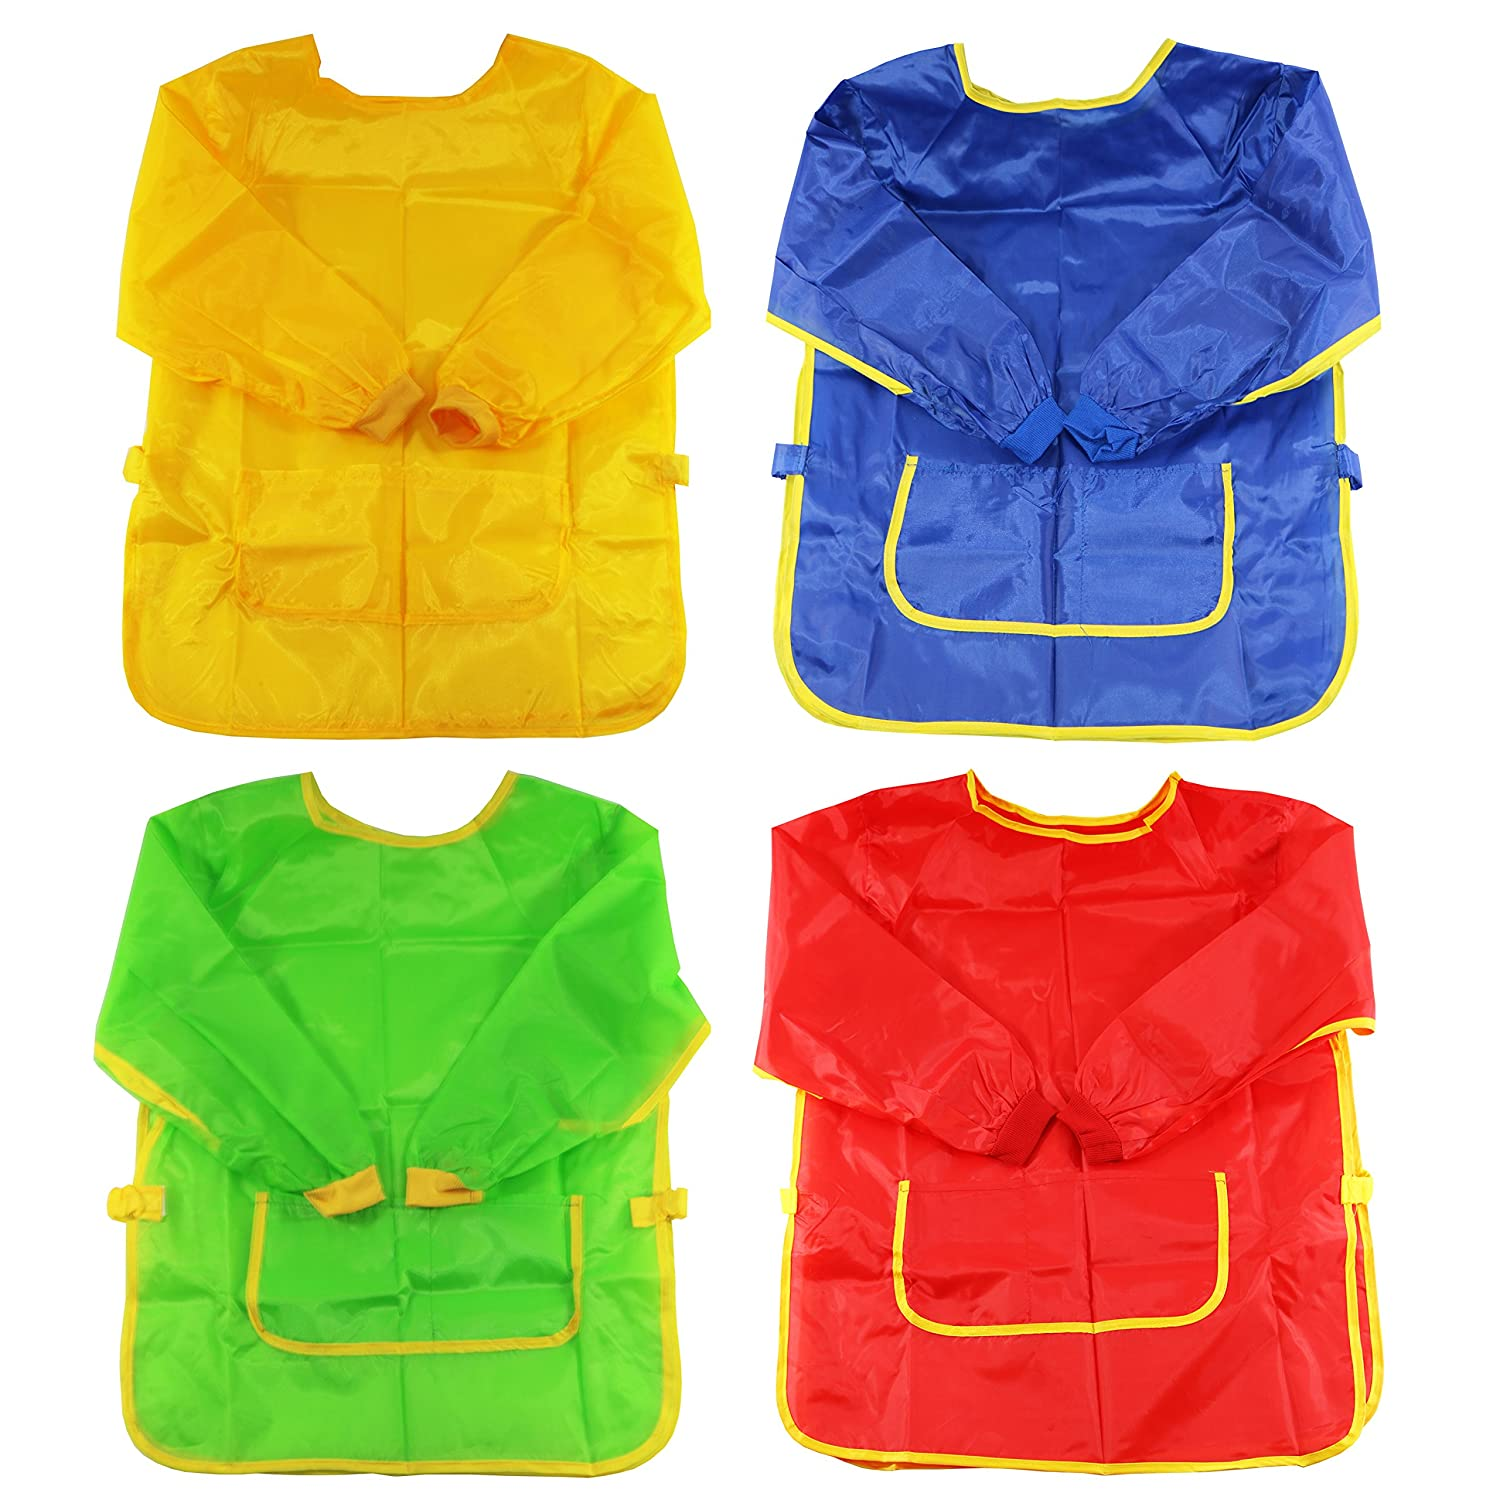 10/20/30 Kids Childrens Protective Painting Wipe Clean Smock Apron (10) Oxford Novelties